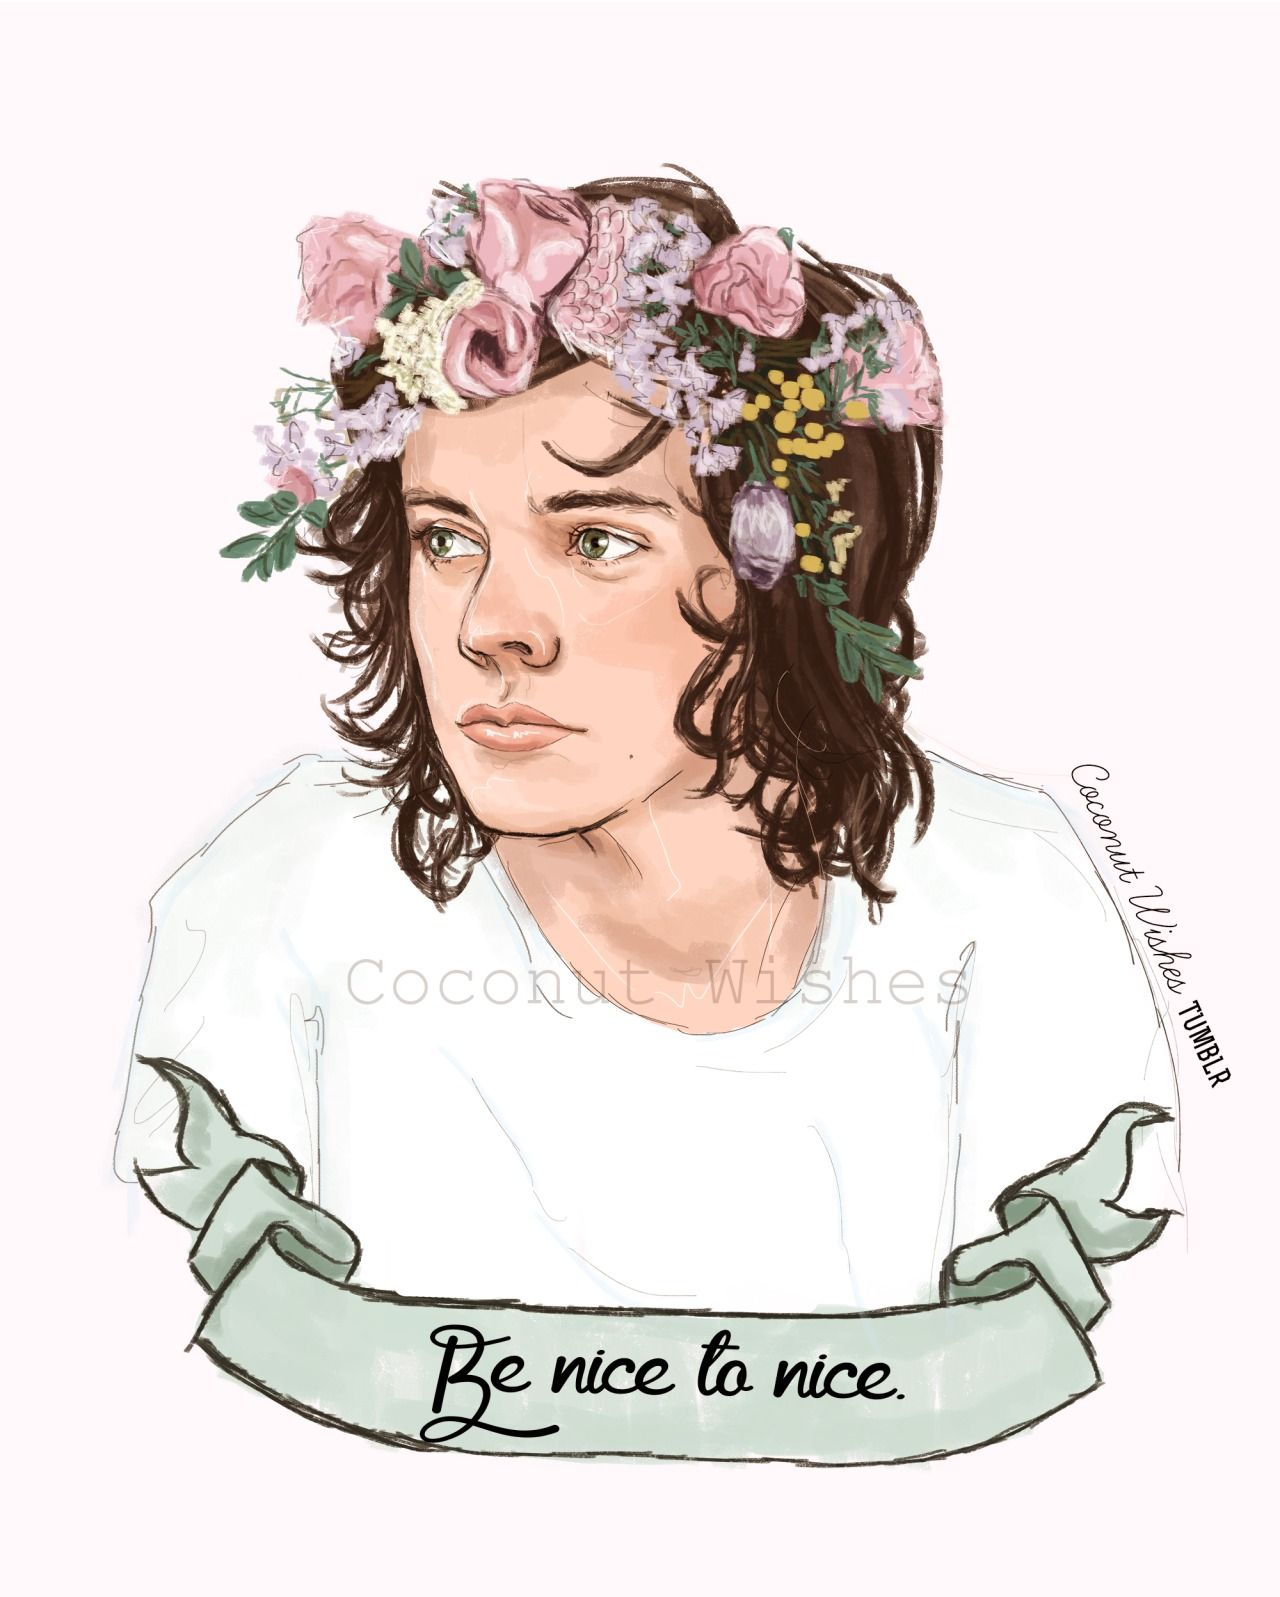 Be nice to nice harry styles fan art coconutwishes nicest kid in be nice to nice harry styles fan art coconutwishes nicest kid in town izmirmasajfo Images